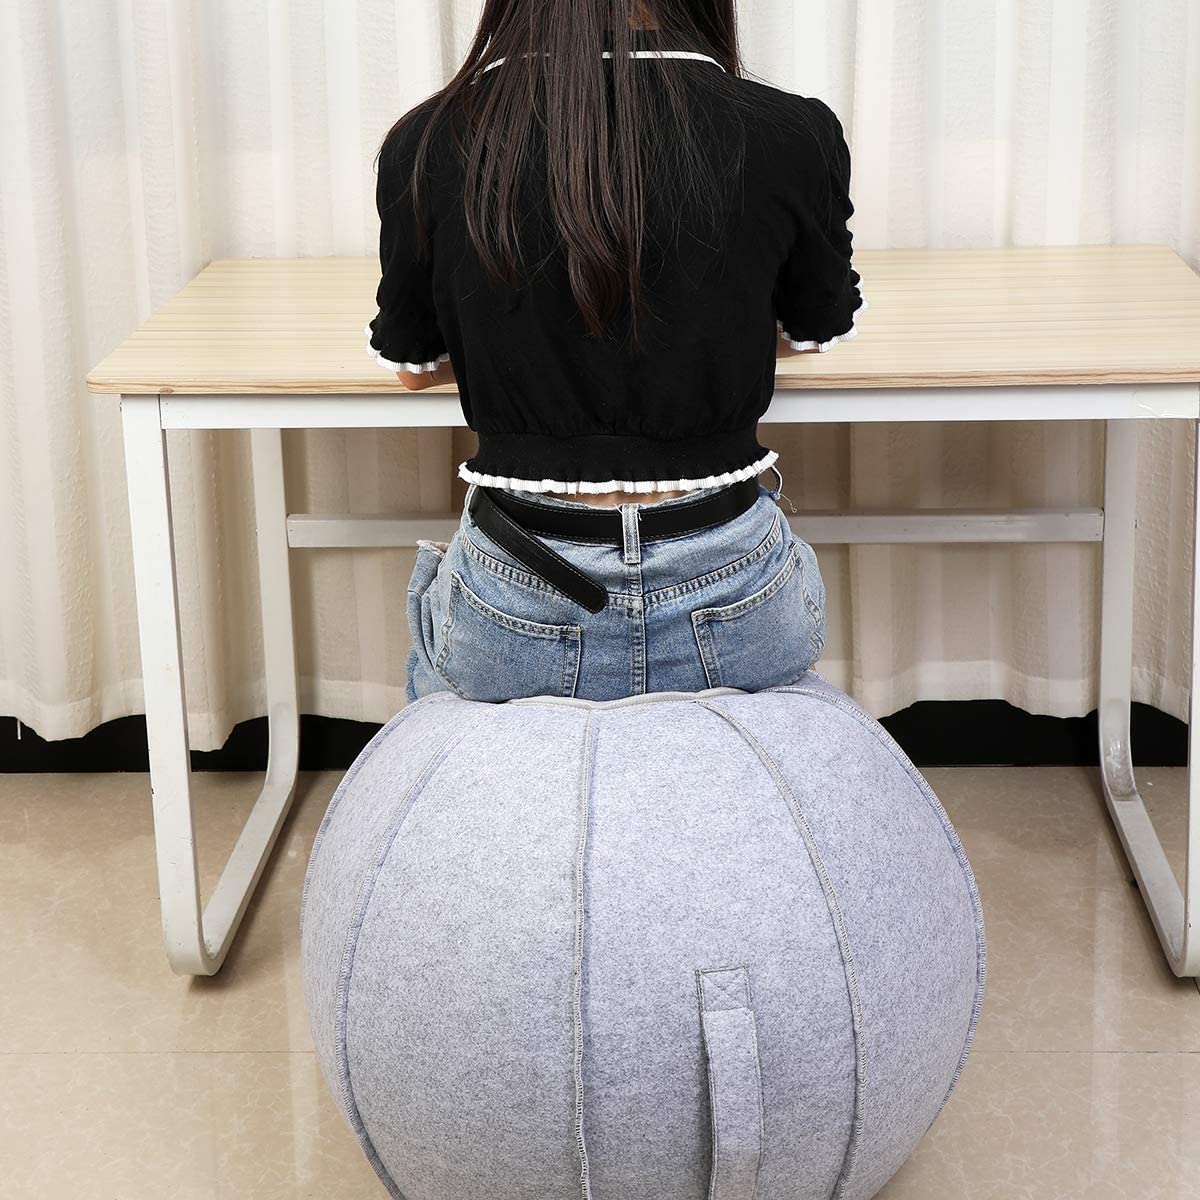 Pilates Exercise Yoga Ball with Cover Dorm and Home Lightweight Self-Standing Ergonomic Posture Activating Exercise Ball Solution with Handle and Pump XGYLVFEI 65cm Sitting Ball Chair for Office